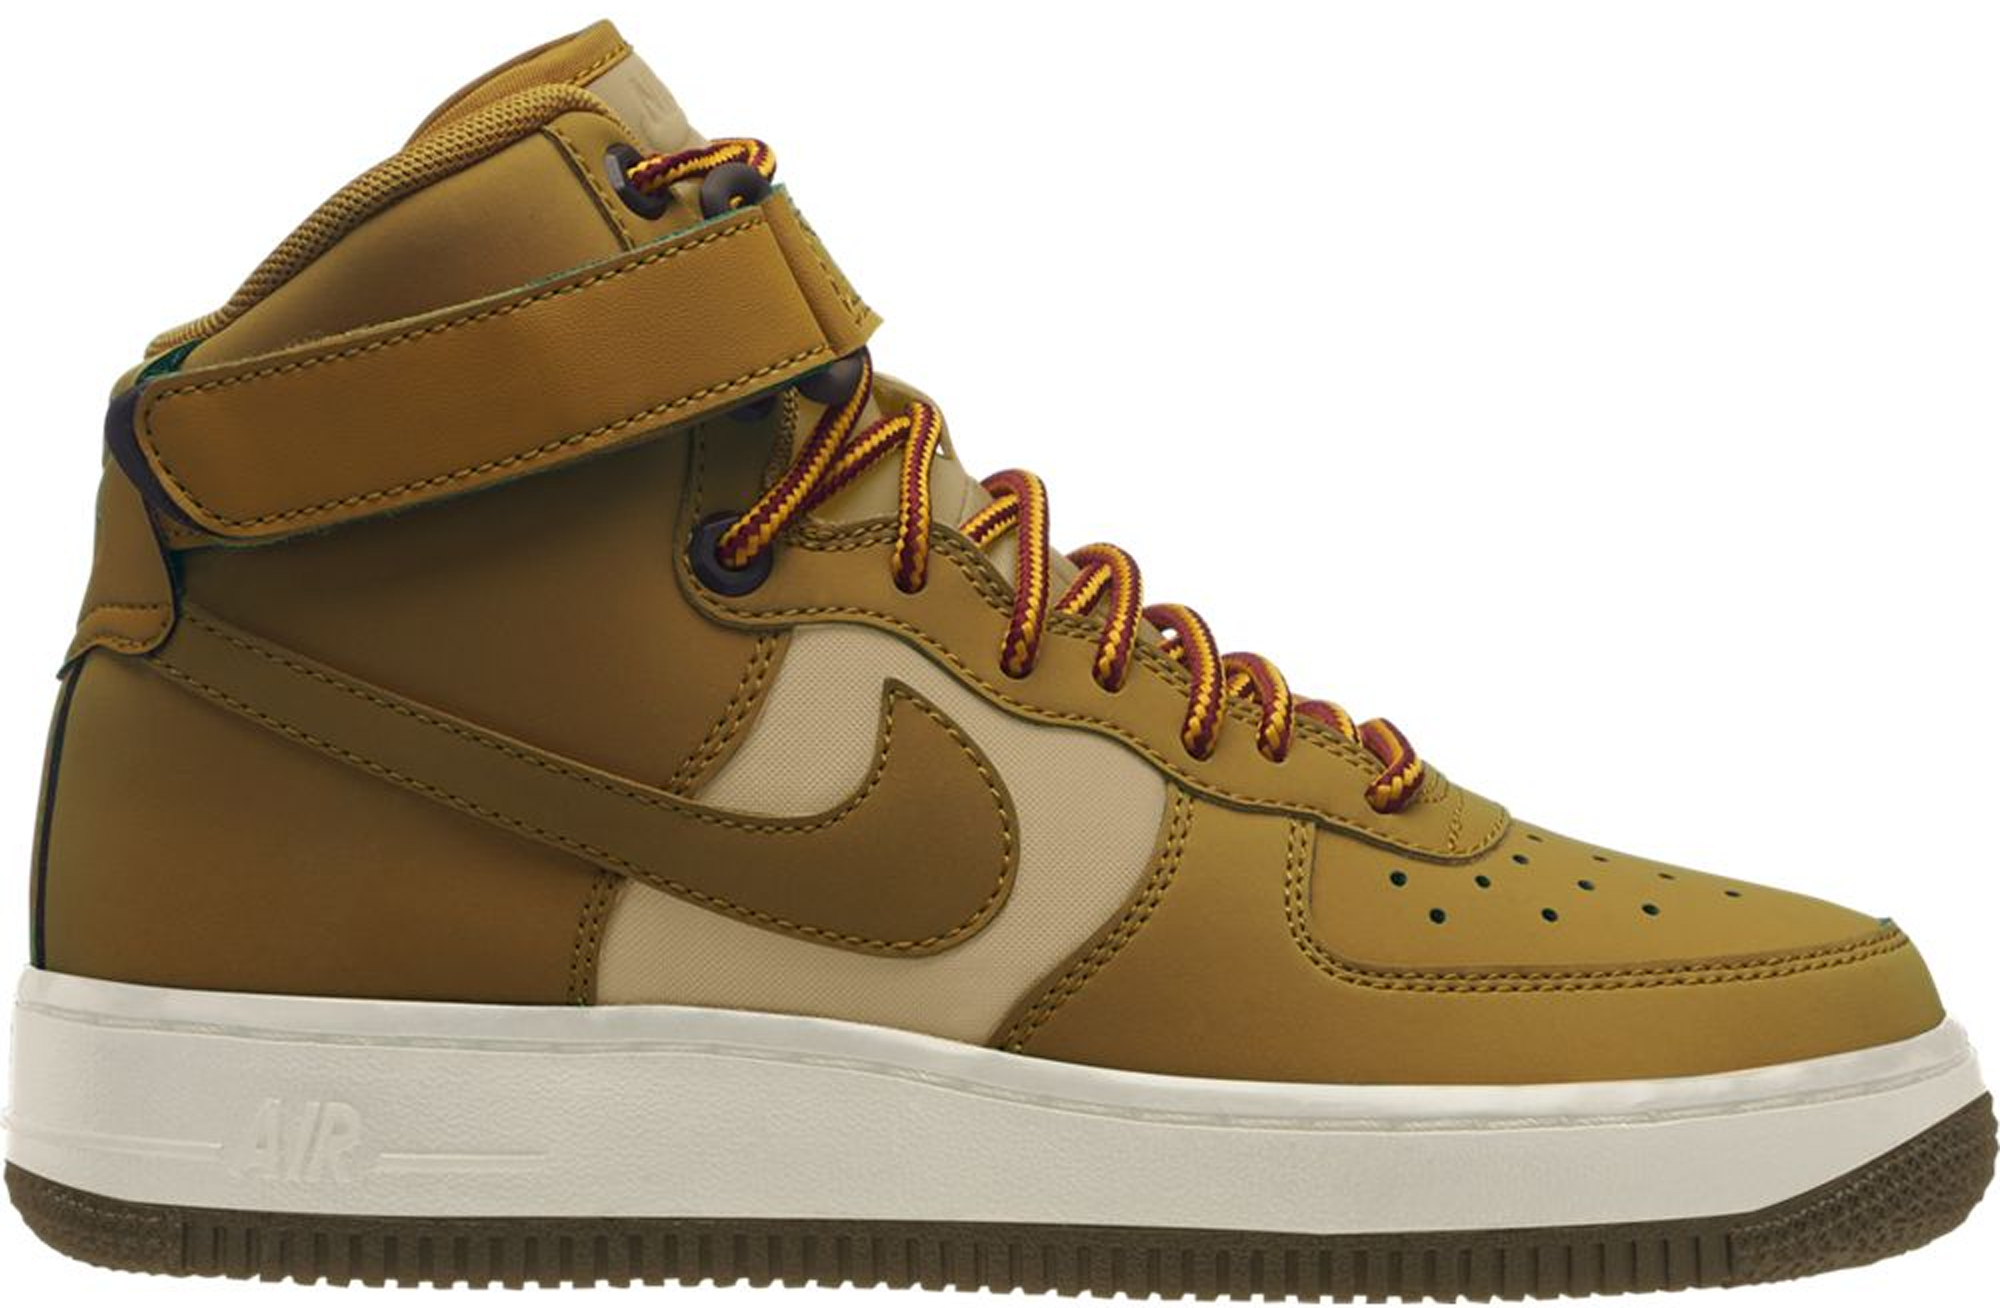 Air Force 1 High Premier Beef and Broccoli Pack Wheat (GS)